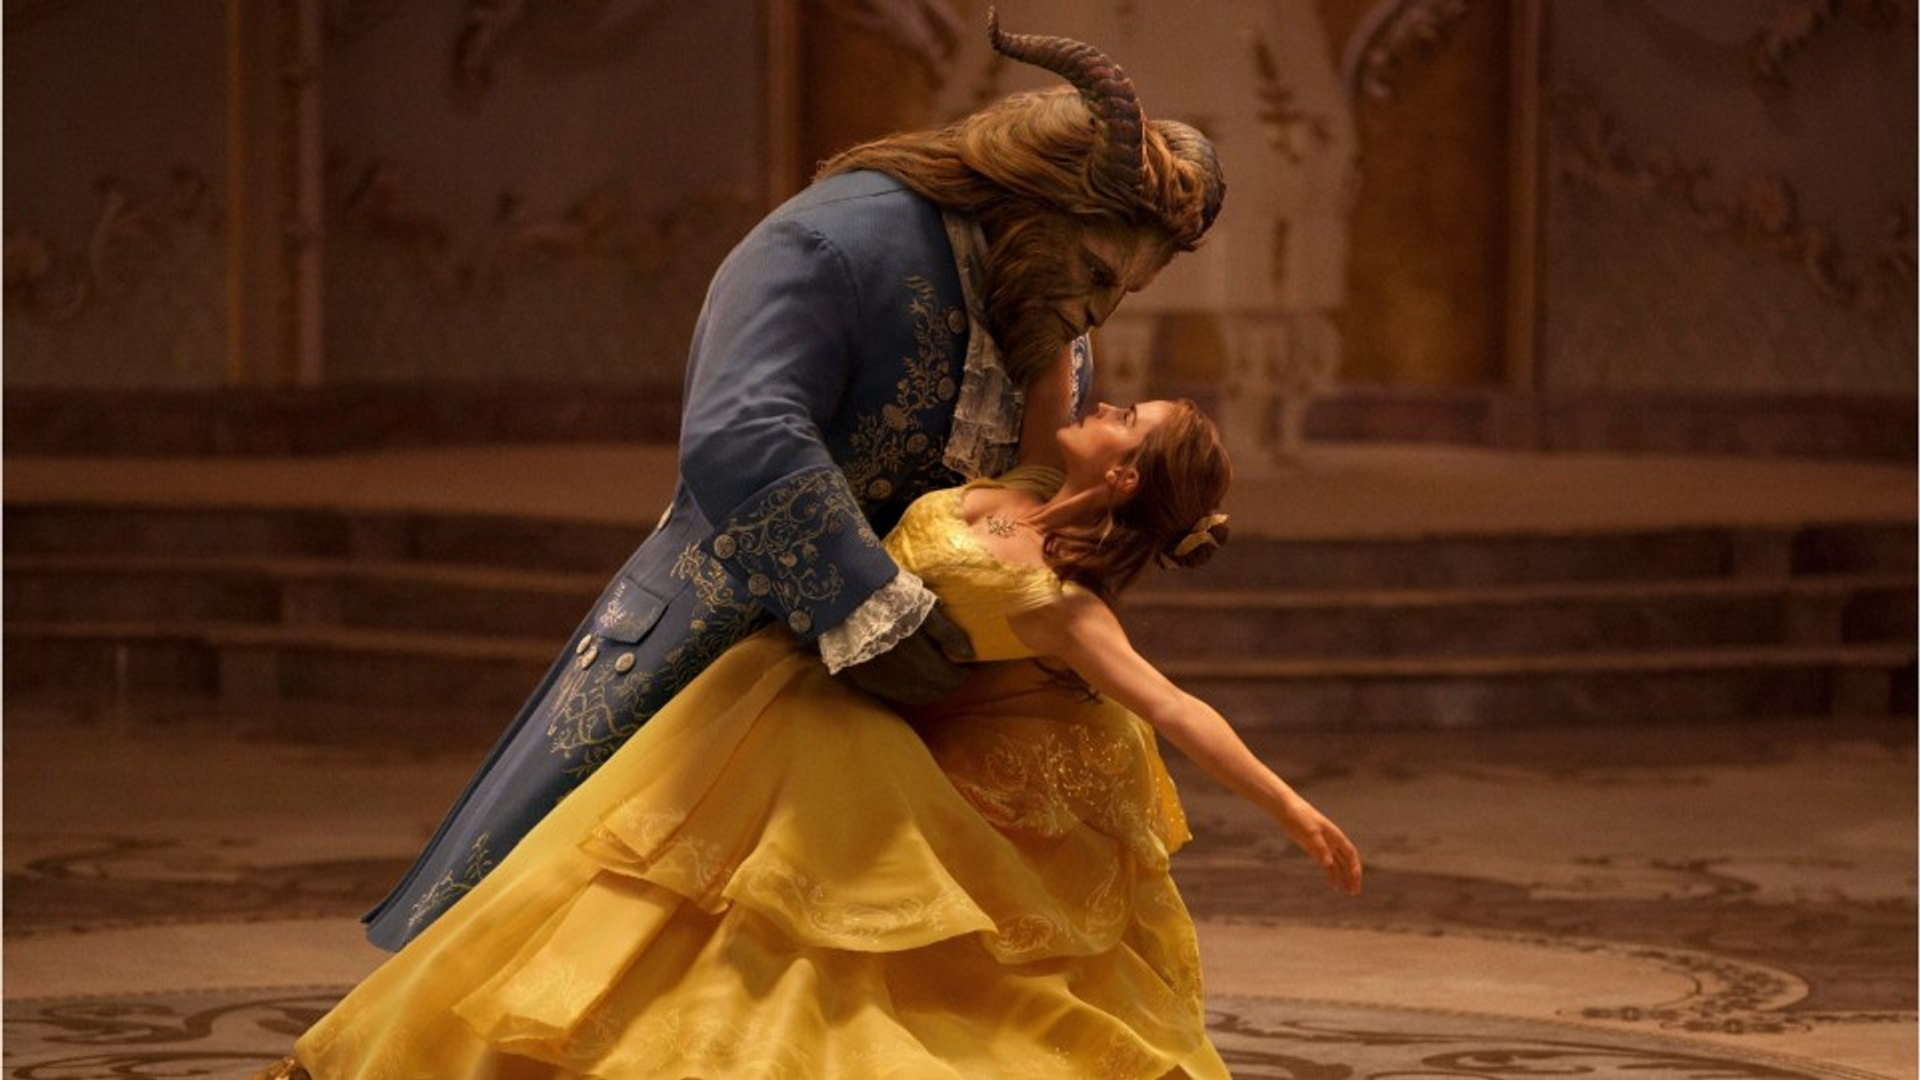 Beauty and the Beast Has Another Huge Weekend